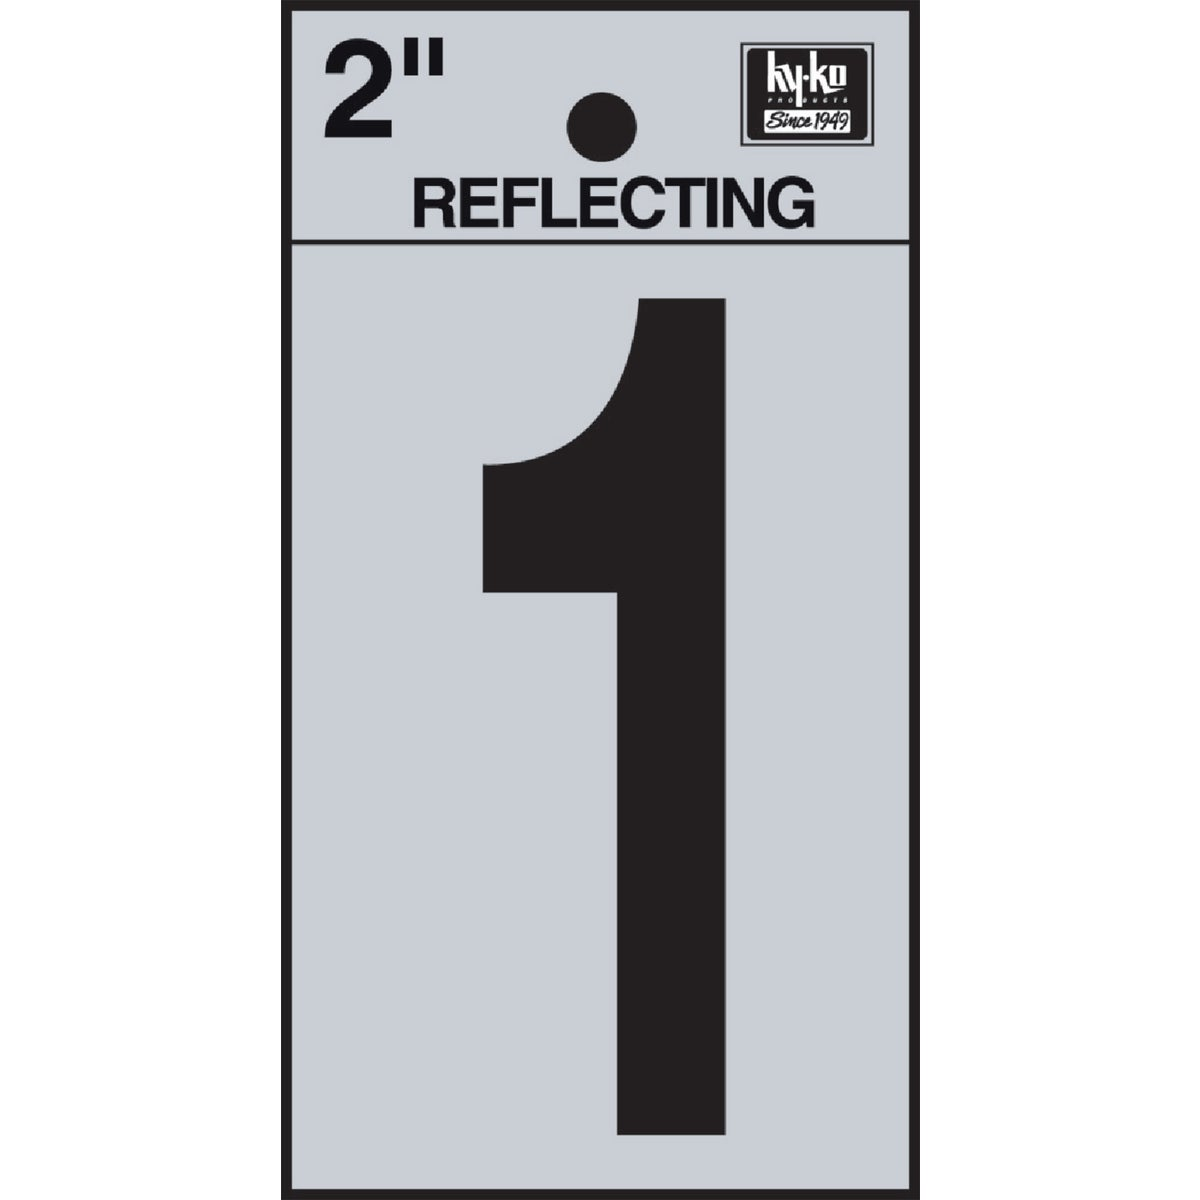 "2"" REFLECT NUMBER 1 - RV-25/1 by Hy Ko Prods Co"